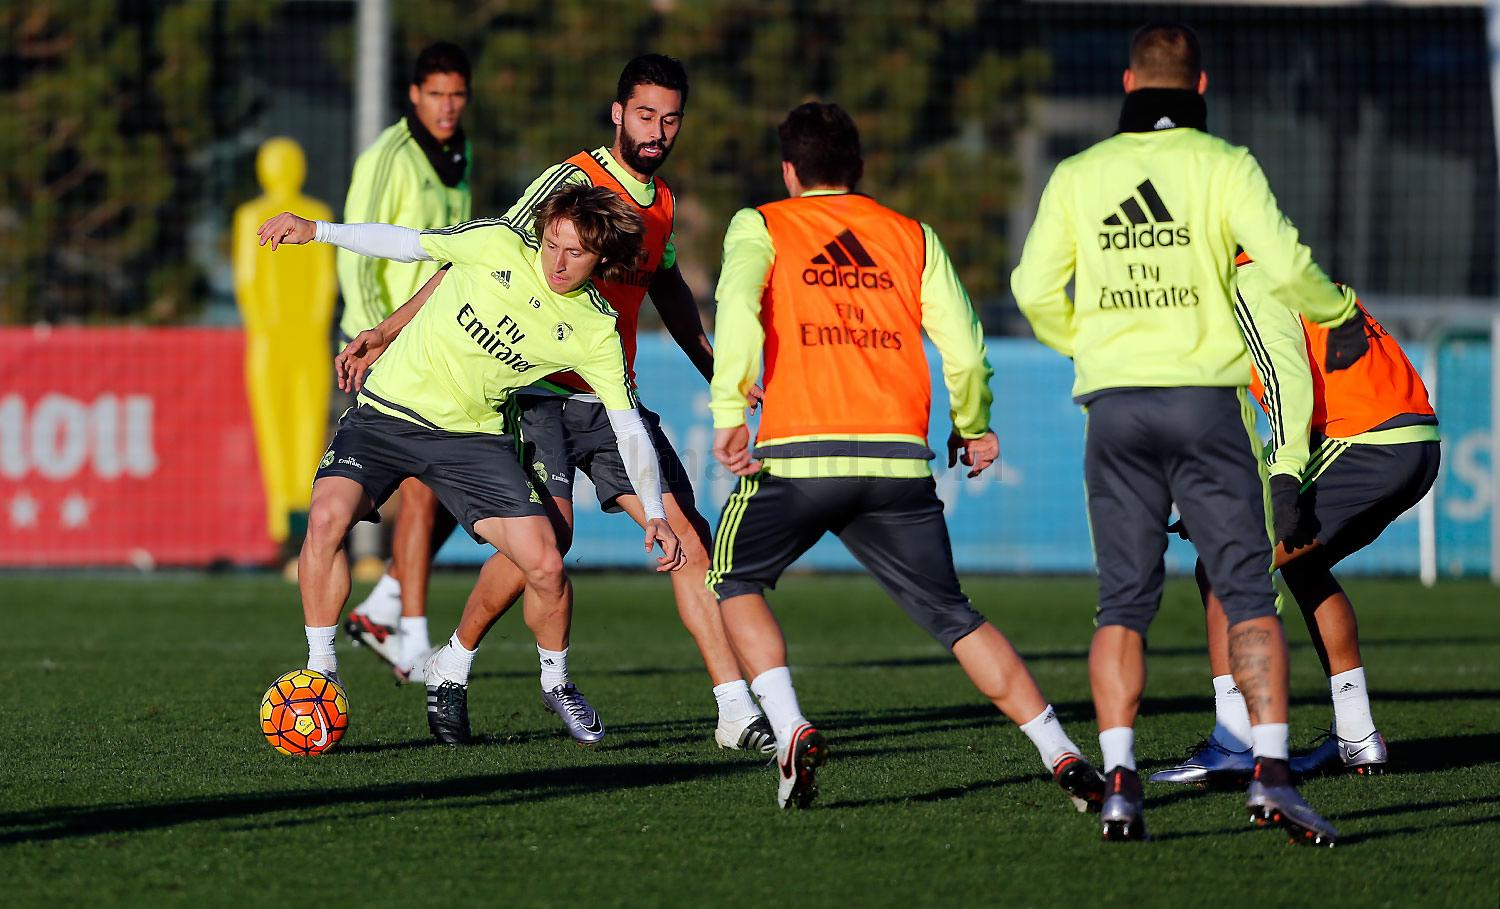 Real Madrid - Entrenamiento del Real Madrid - 02-01-2016